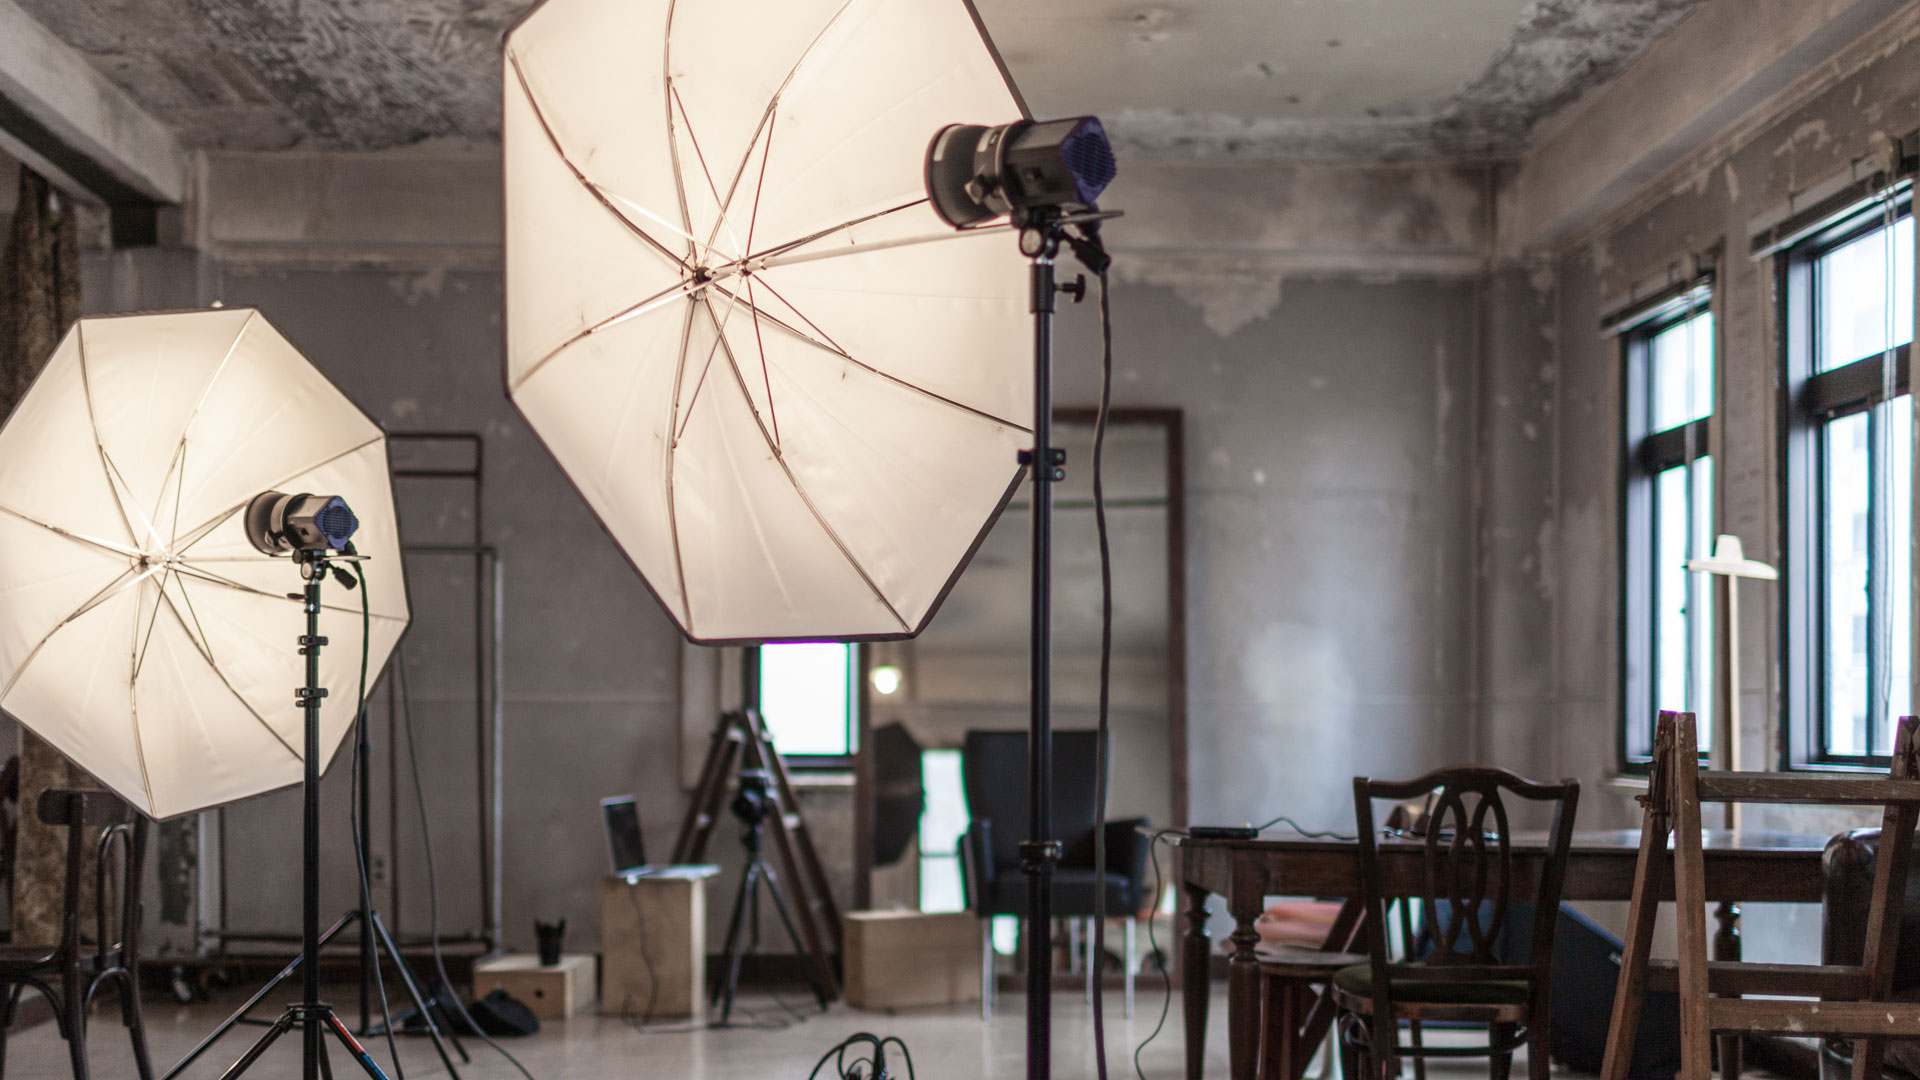 How-to Set Up Your DIY Product Photography Studio